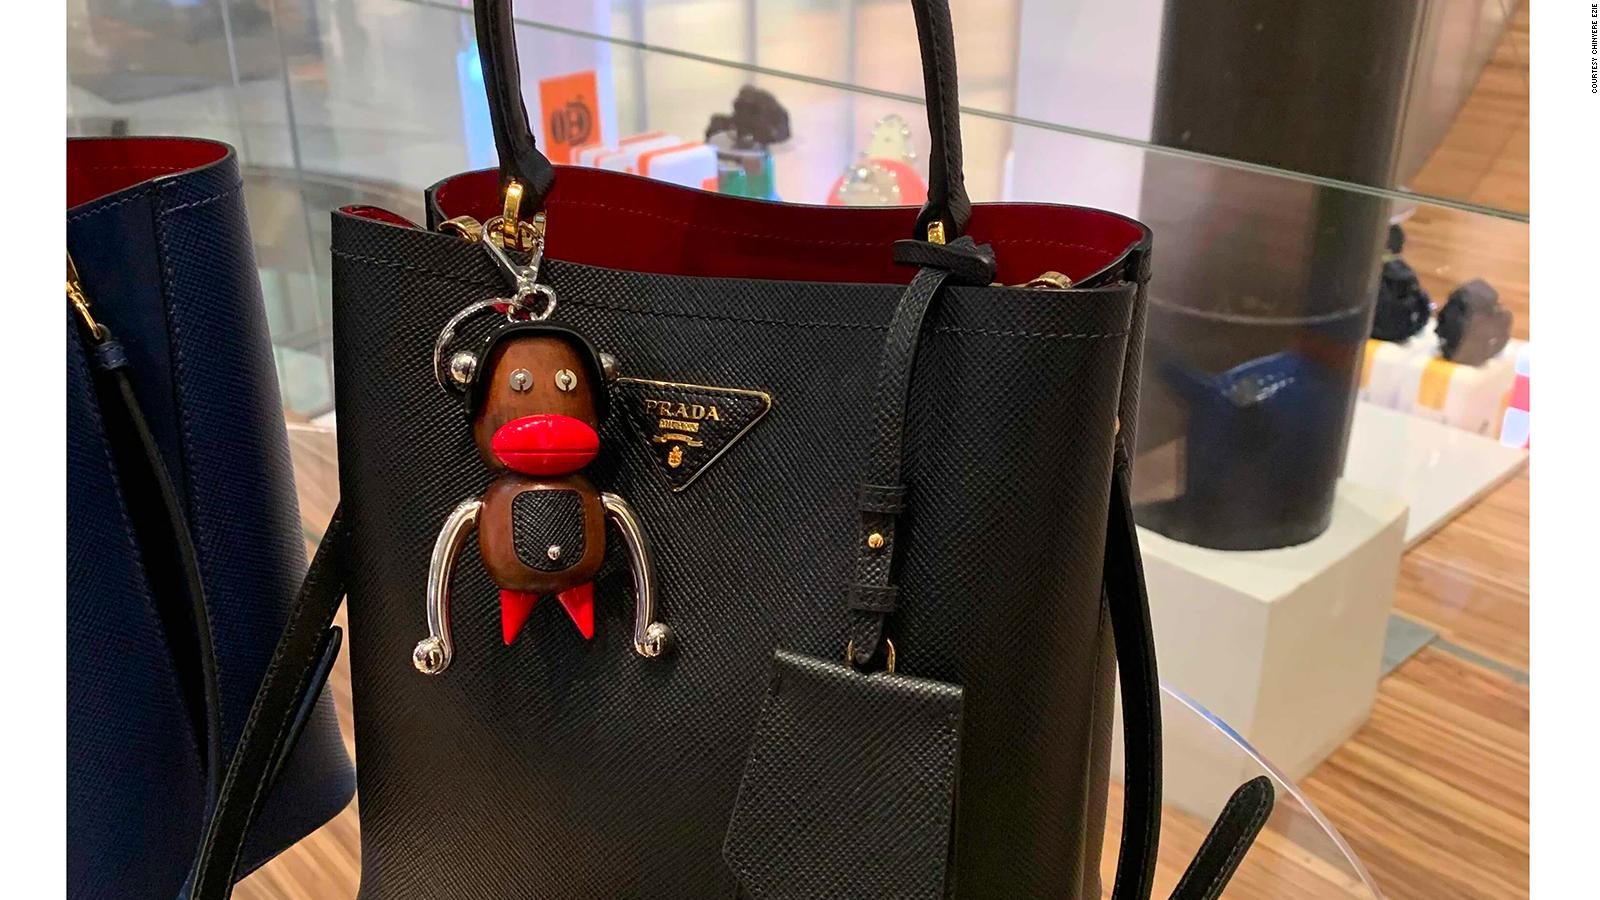 662c98a852ee Prada pulls products after accusations of blackface imagery - CNN Style